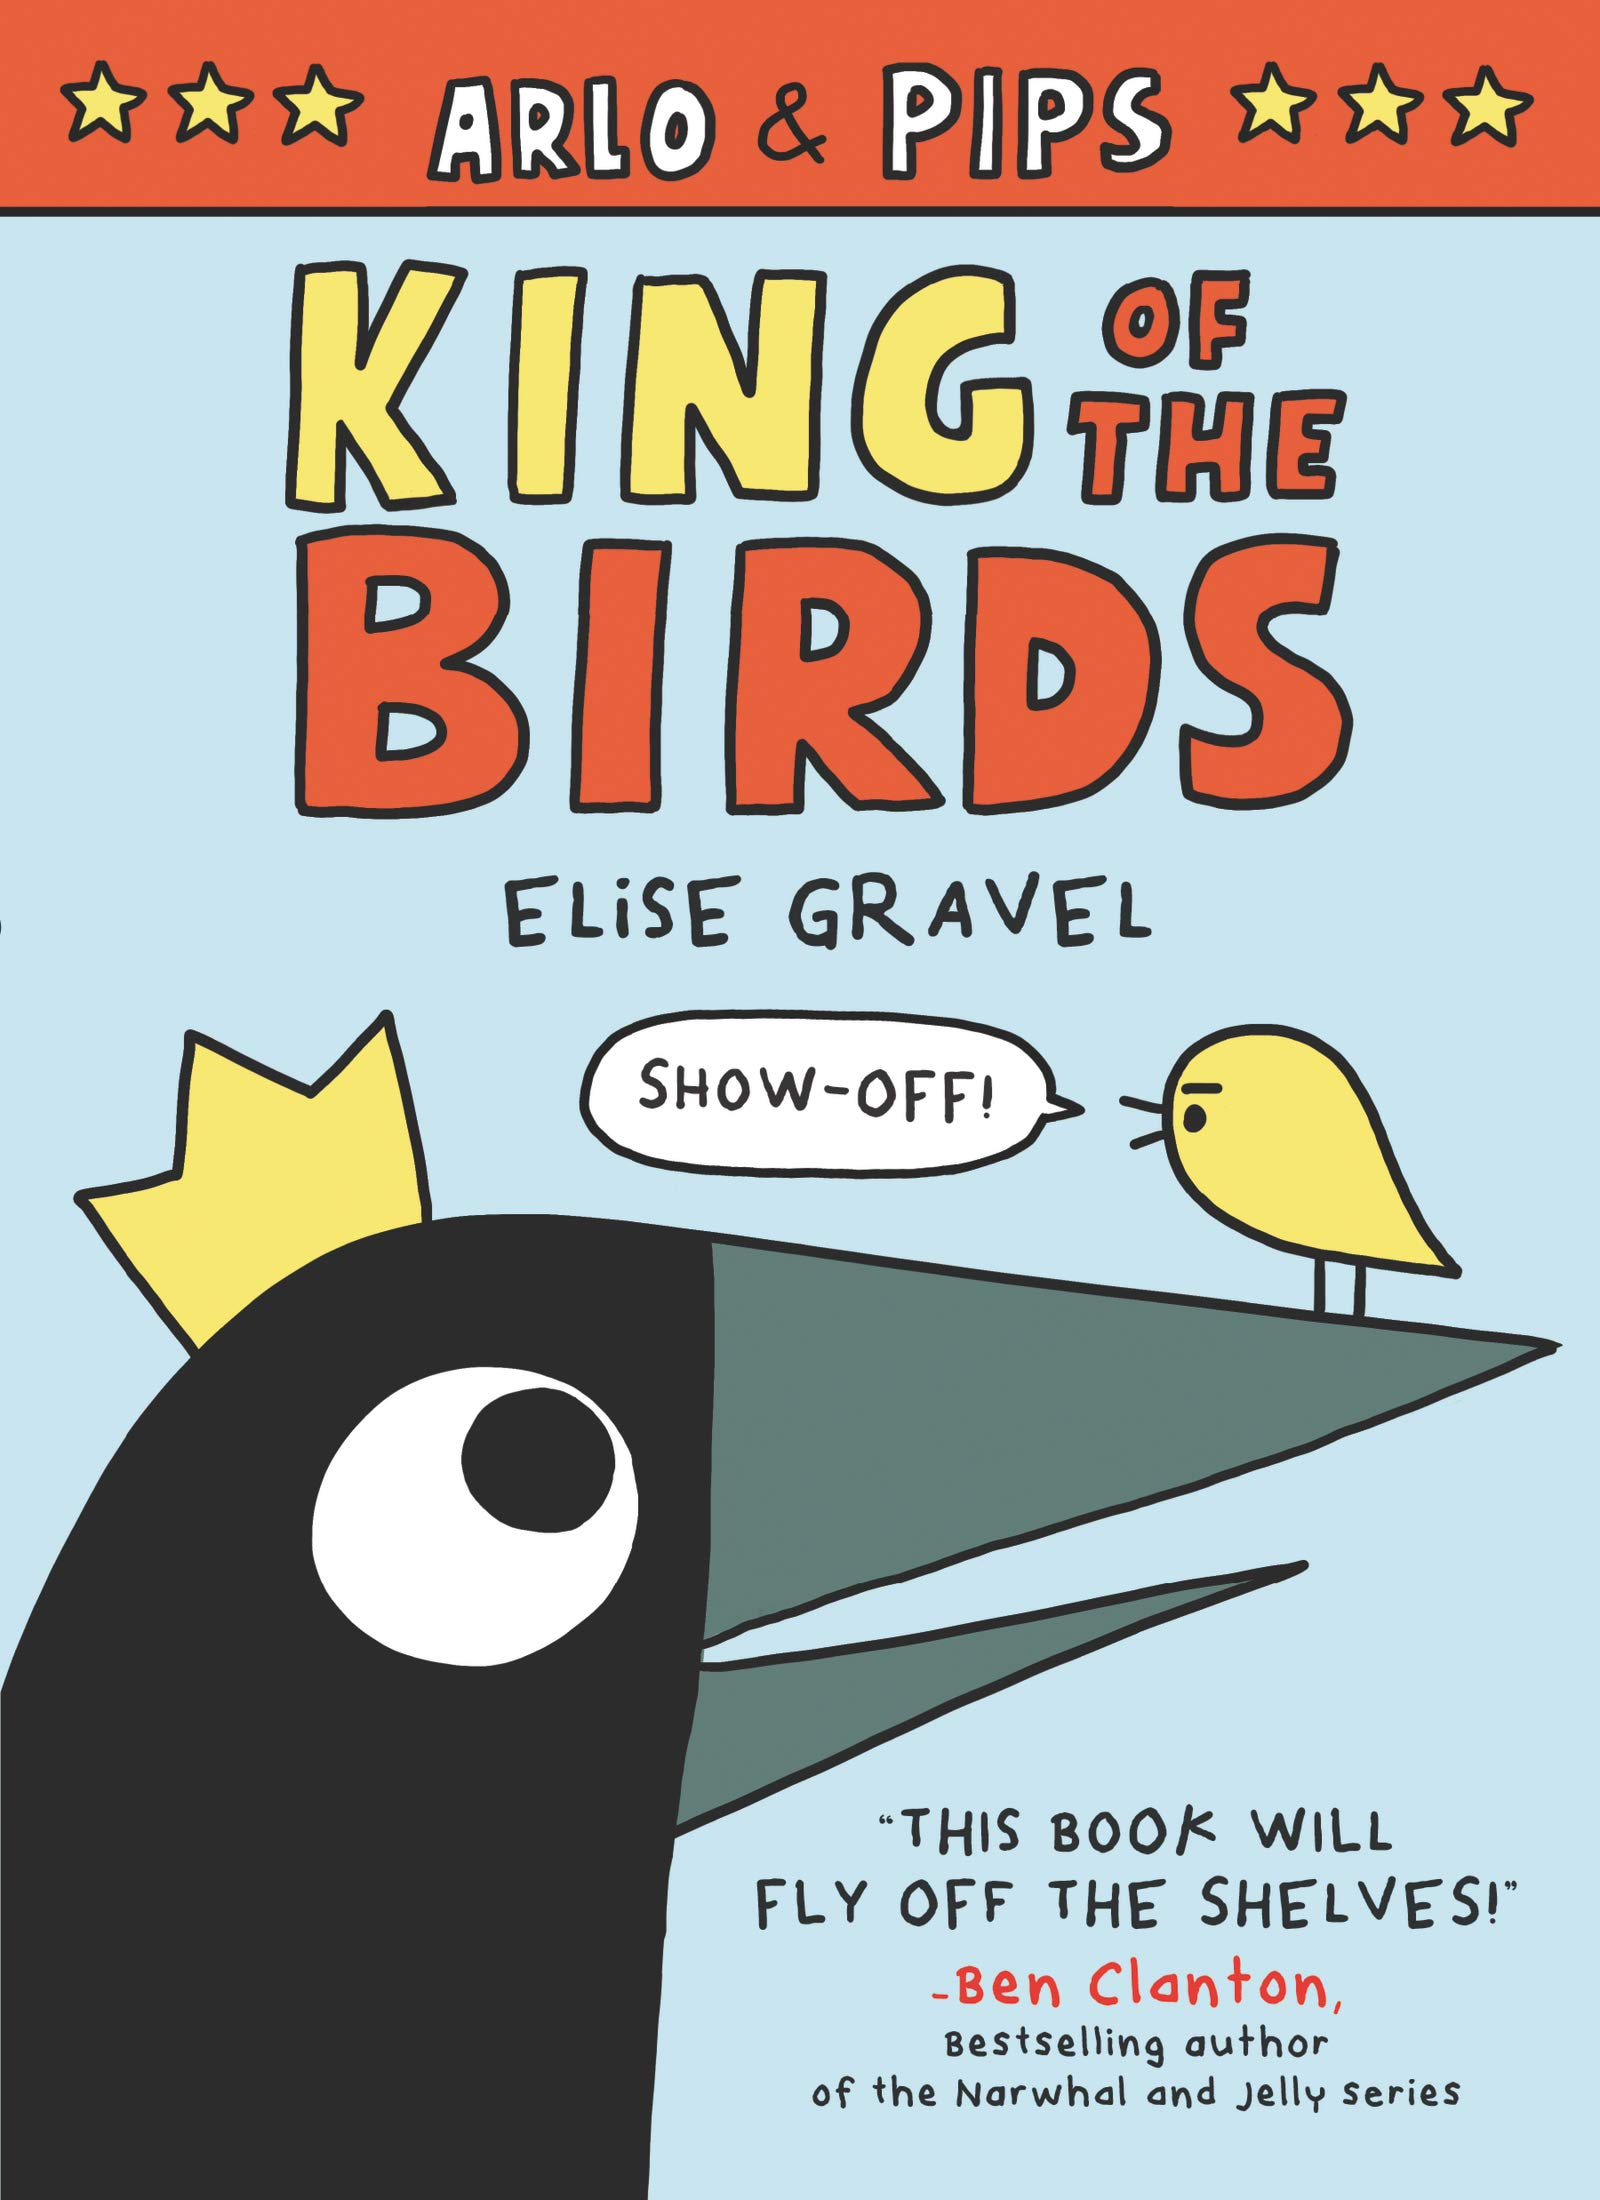 Amazon.com: Arlo & Pips: King of the Birds (9780062982223): Gravel, Elise,  Gravel, Elise: Books